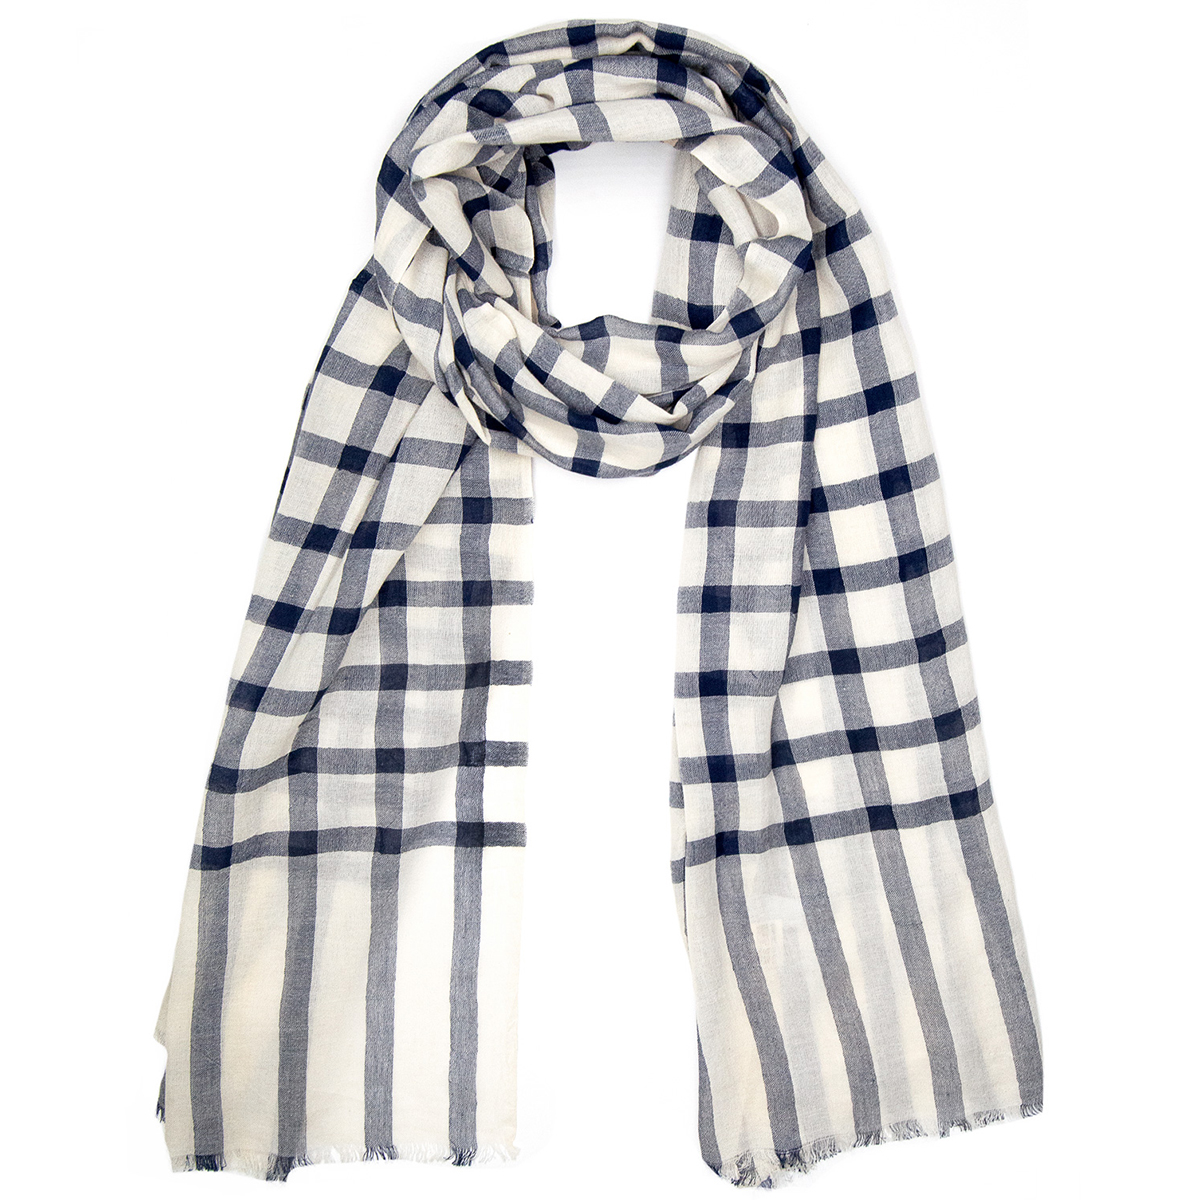 Indigo check cotton scarf